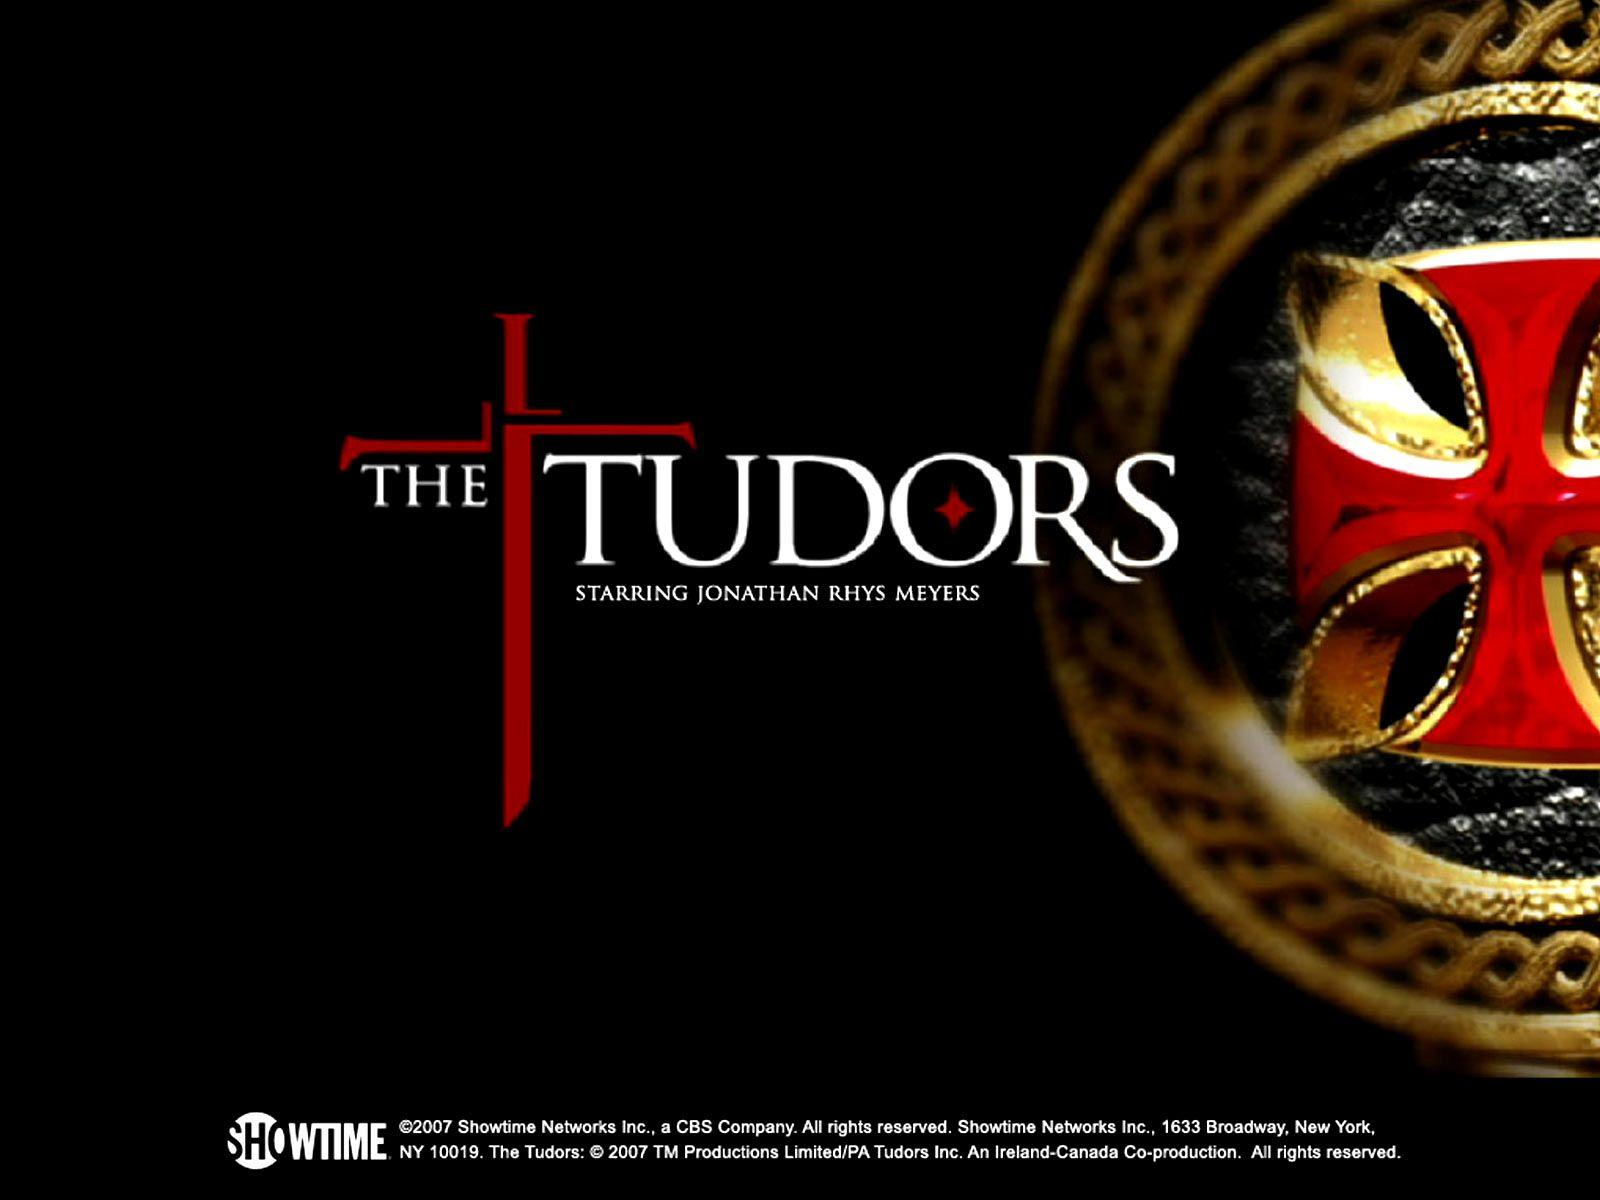 Desktop Wallpapers · Gallery · Movies & TV · The Tudors